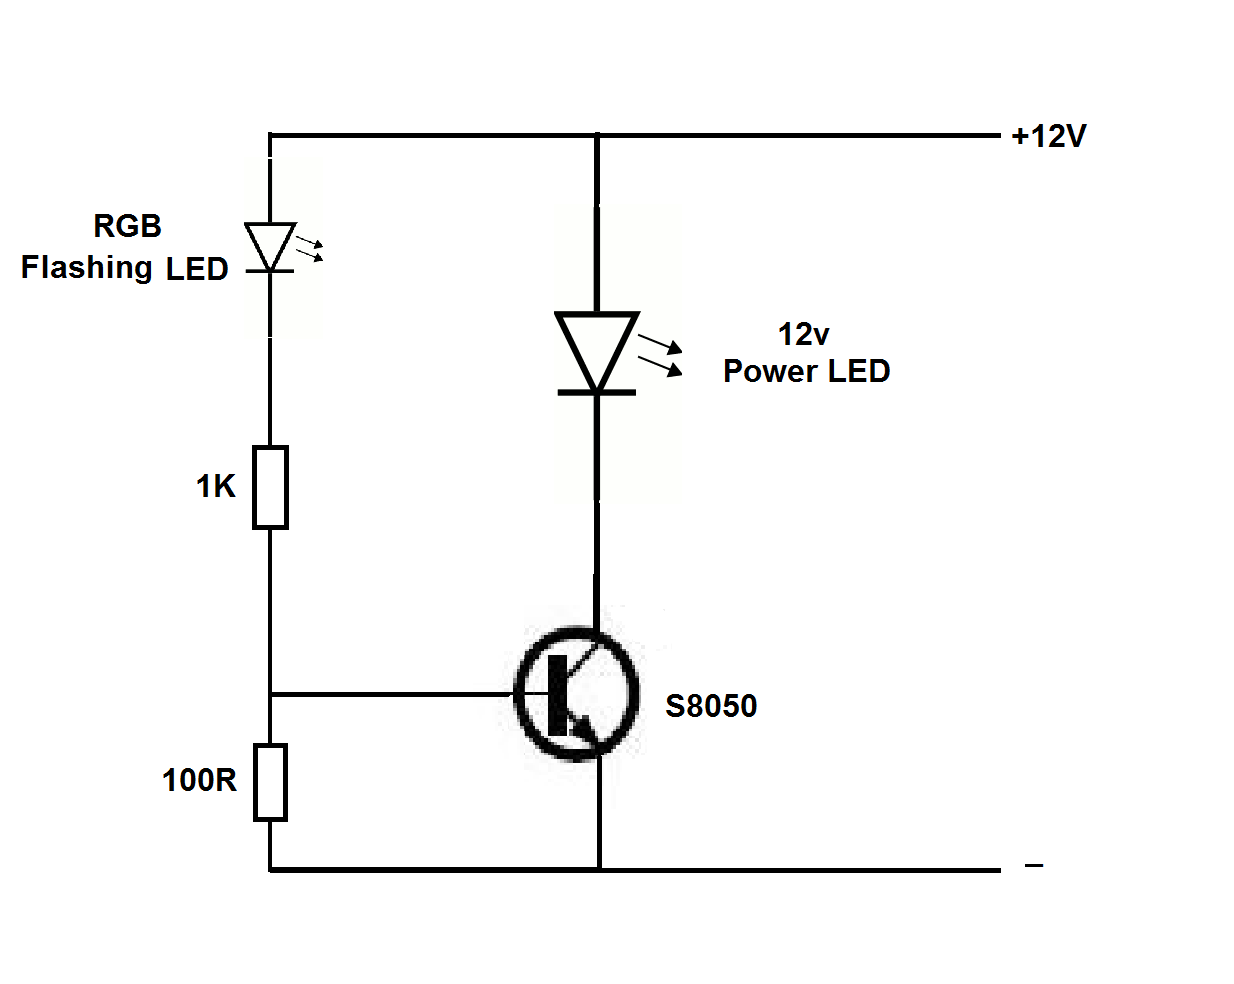 small resolution of flasher 2busing 2bflashing 2bled 12v power led flasher circuit using led flasher wiring diagram